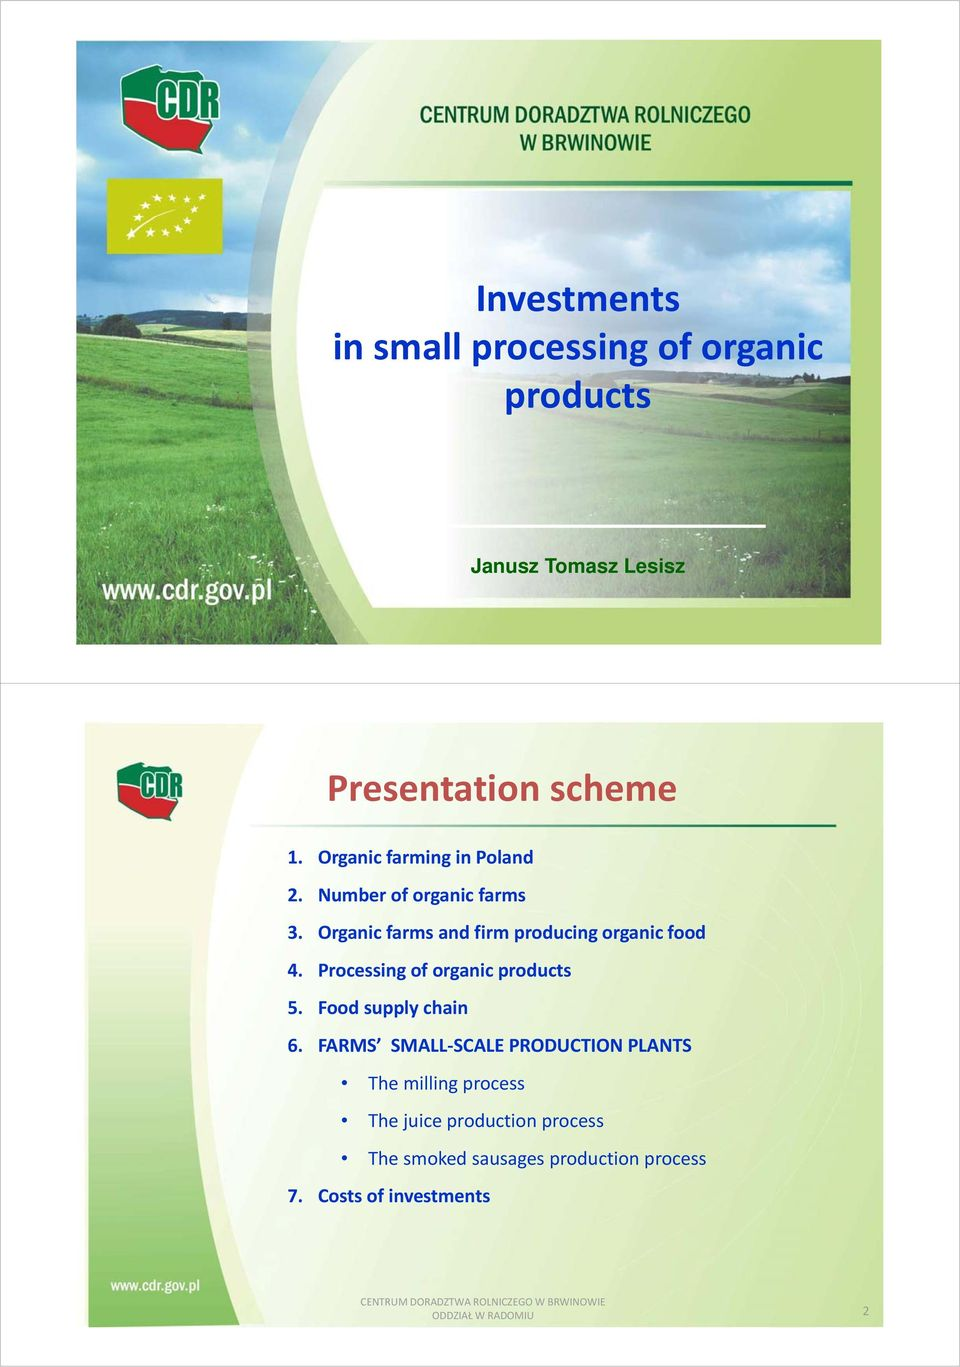 Processing of organic products 5. Food supply chain 6.